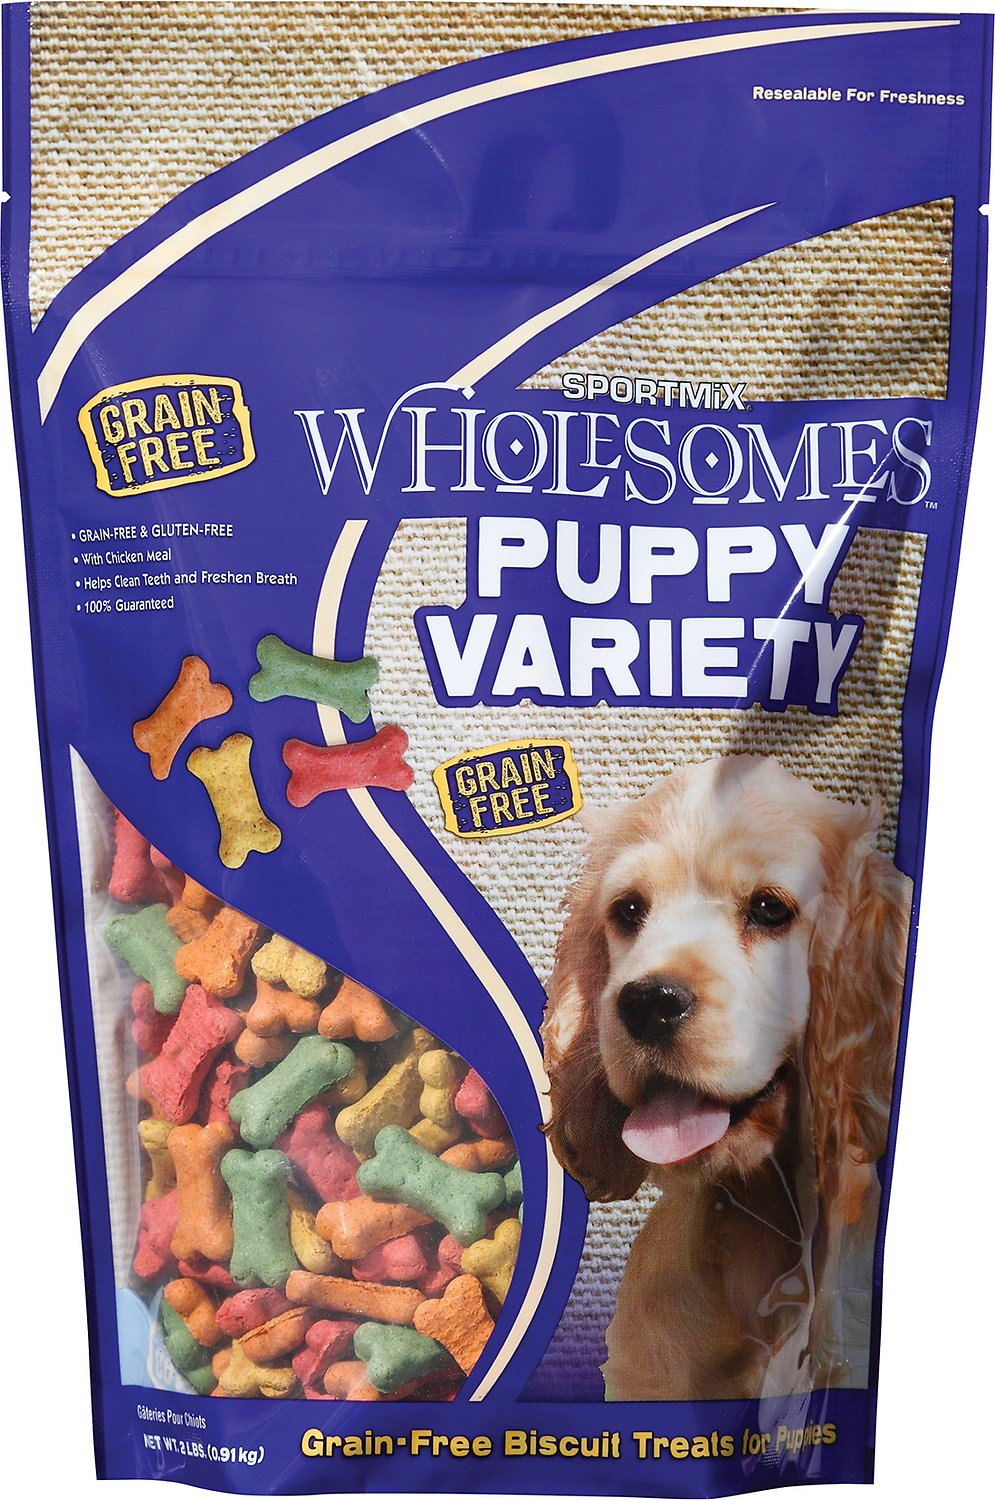 Wholesomes Sportmix Dog Biscuits Grain Free